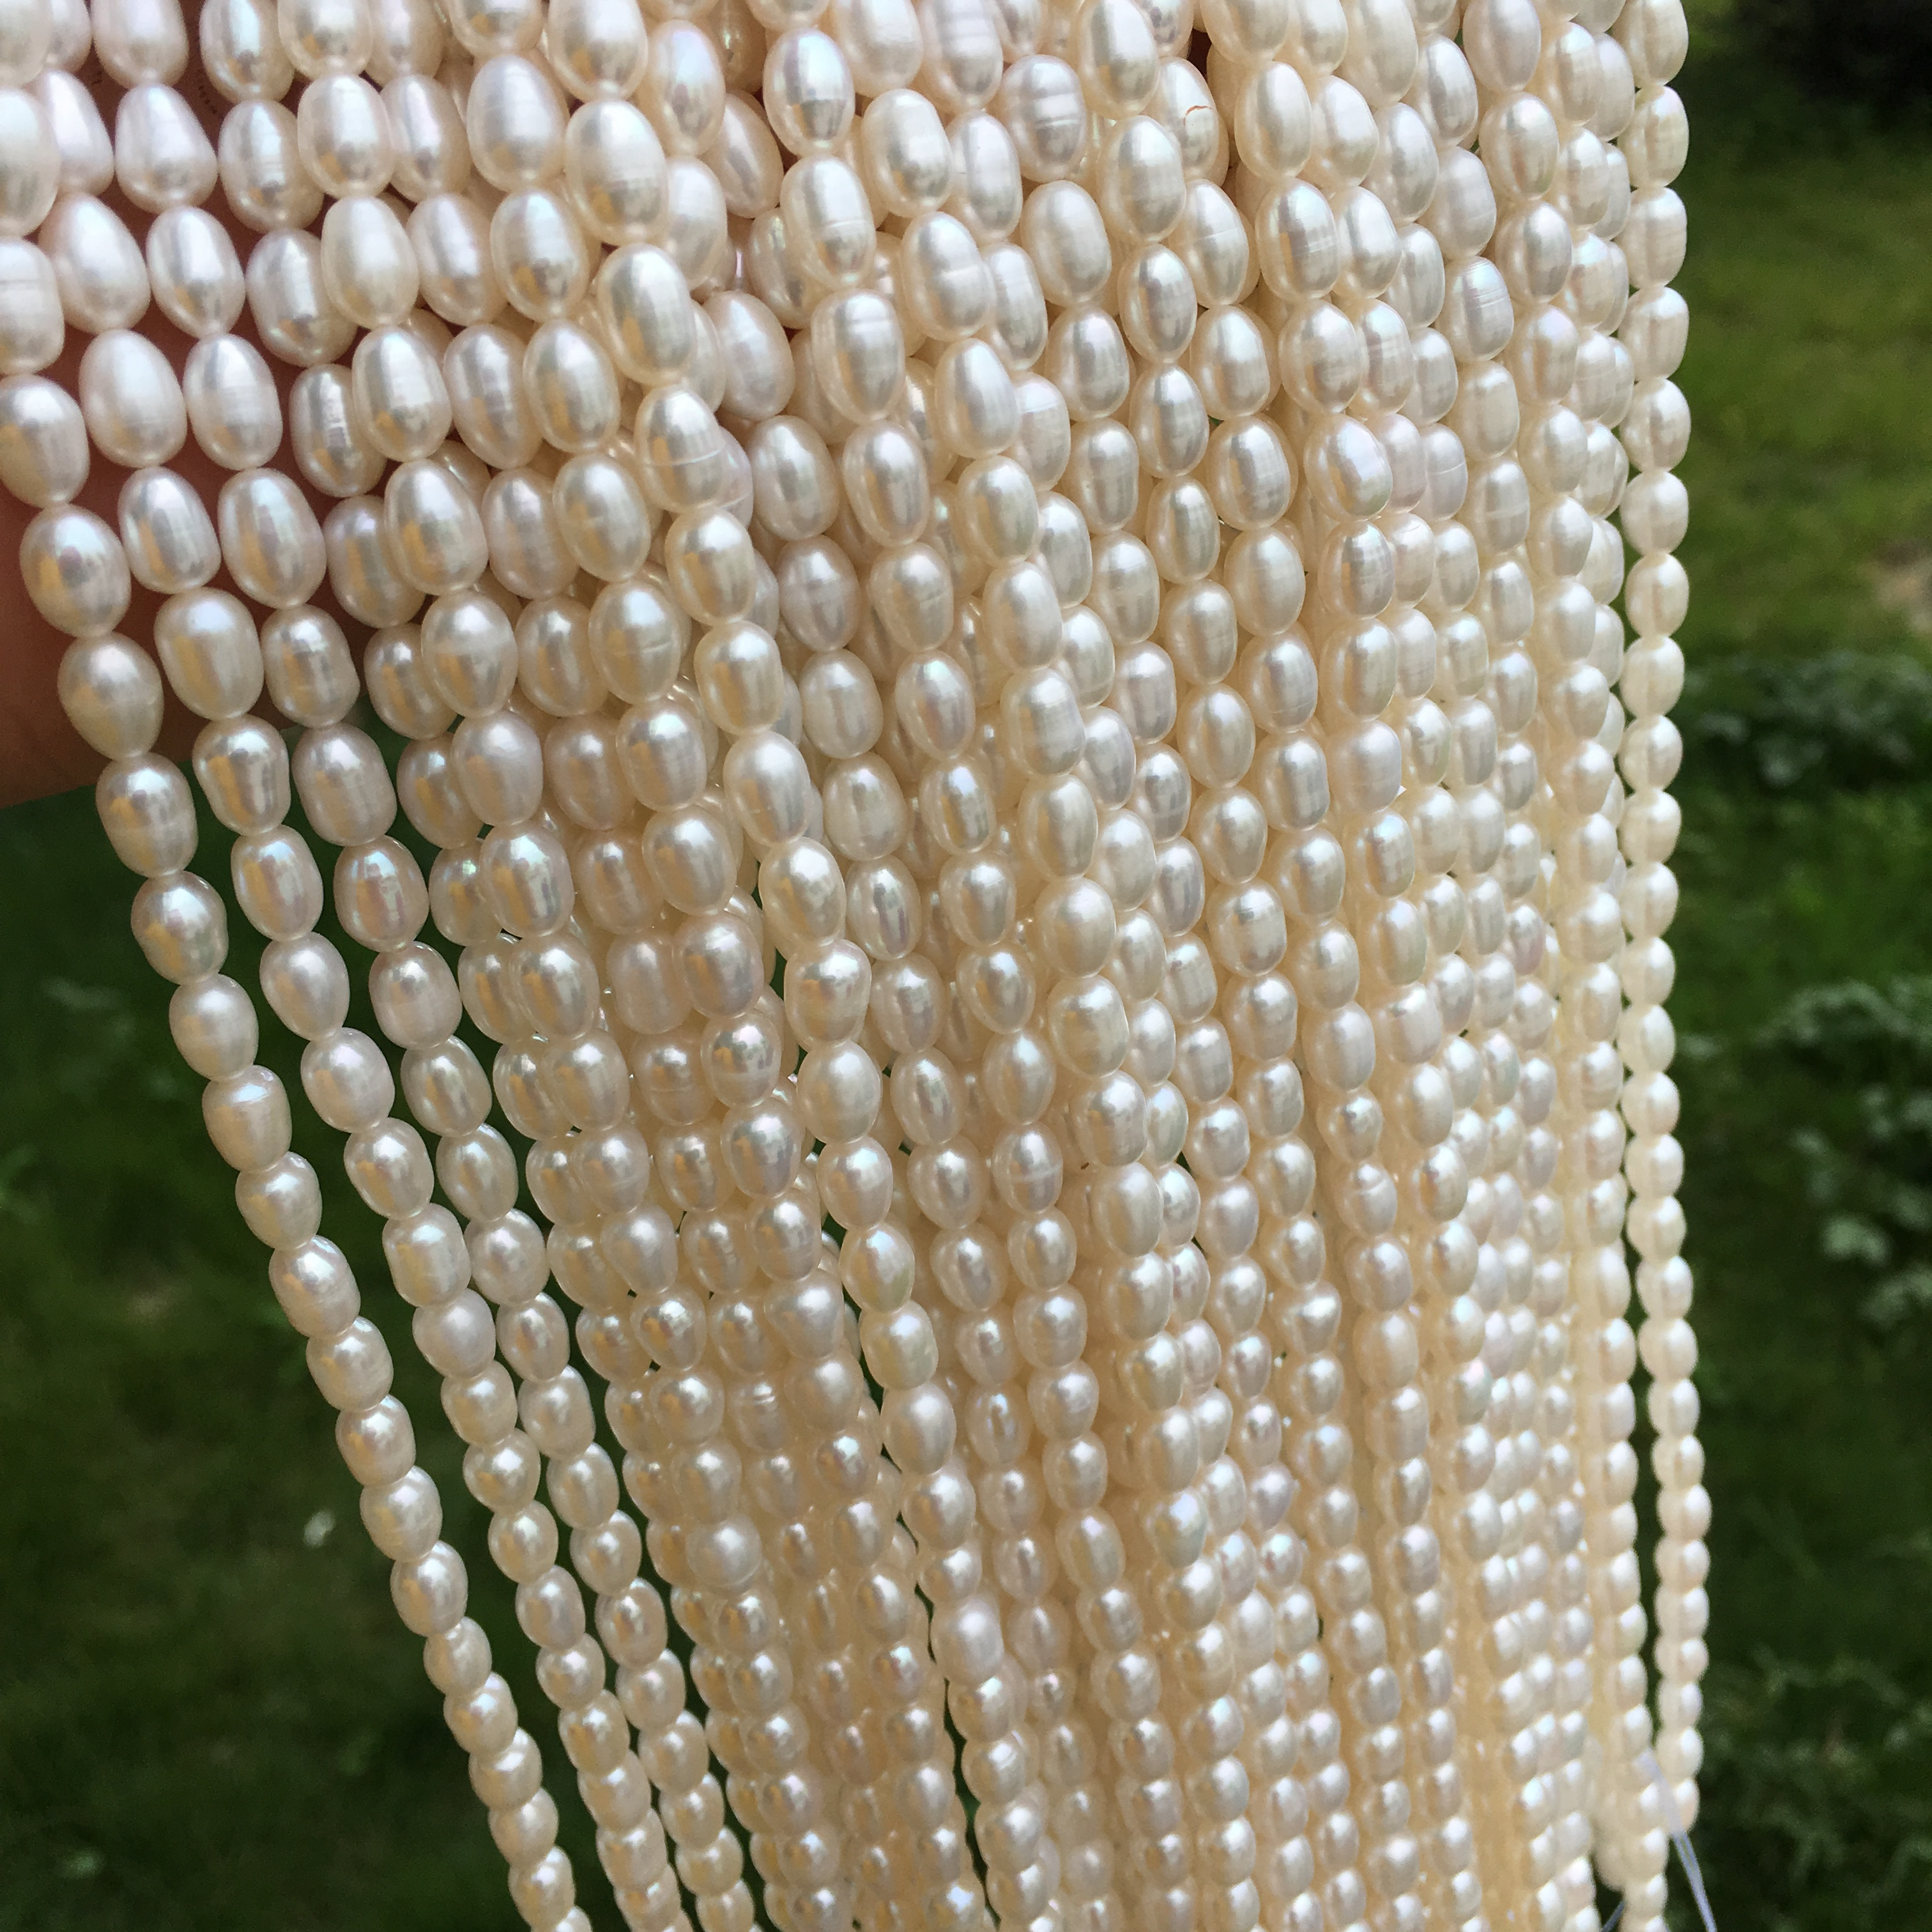 Simple pearl necklace 5.5mm meter Pearl White semi-finished handicraft jewelry DIY